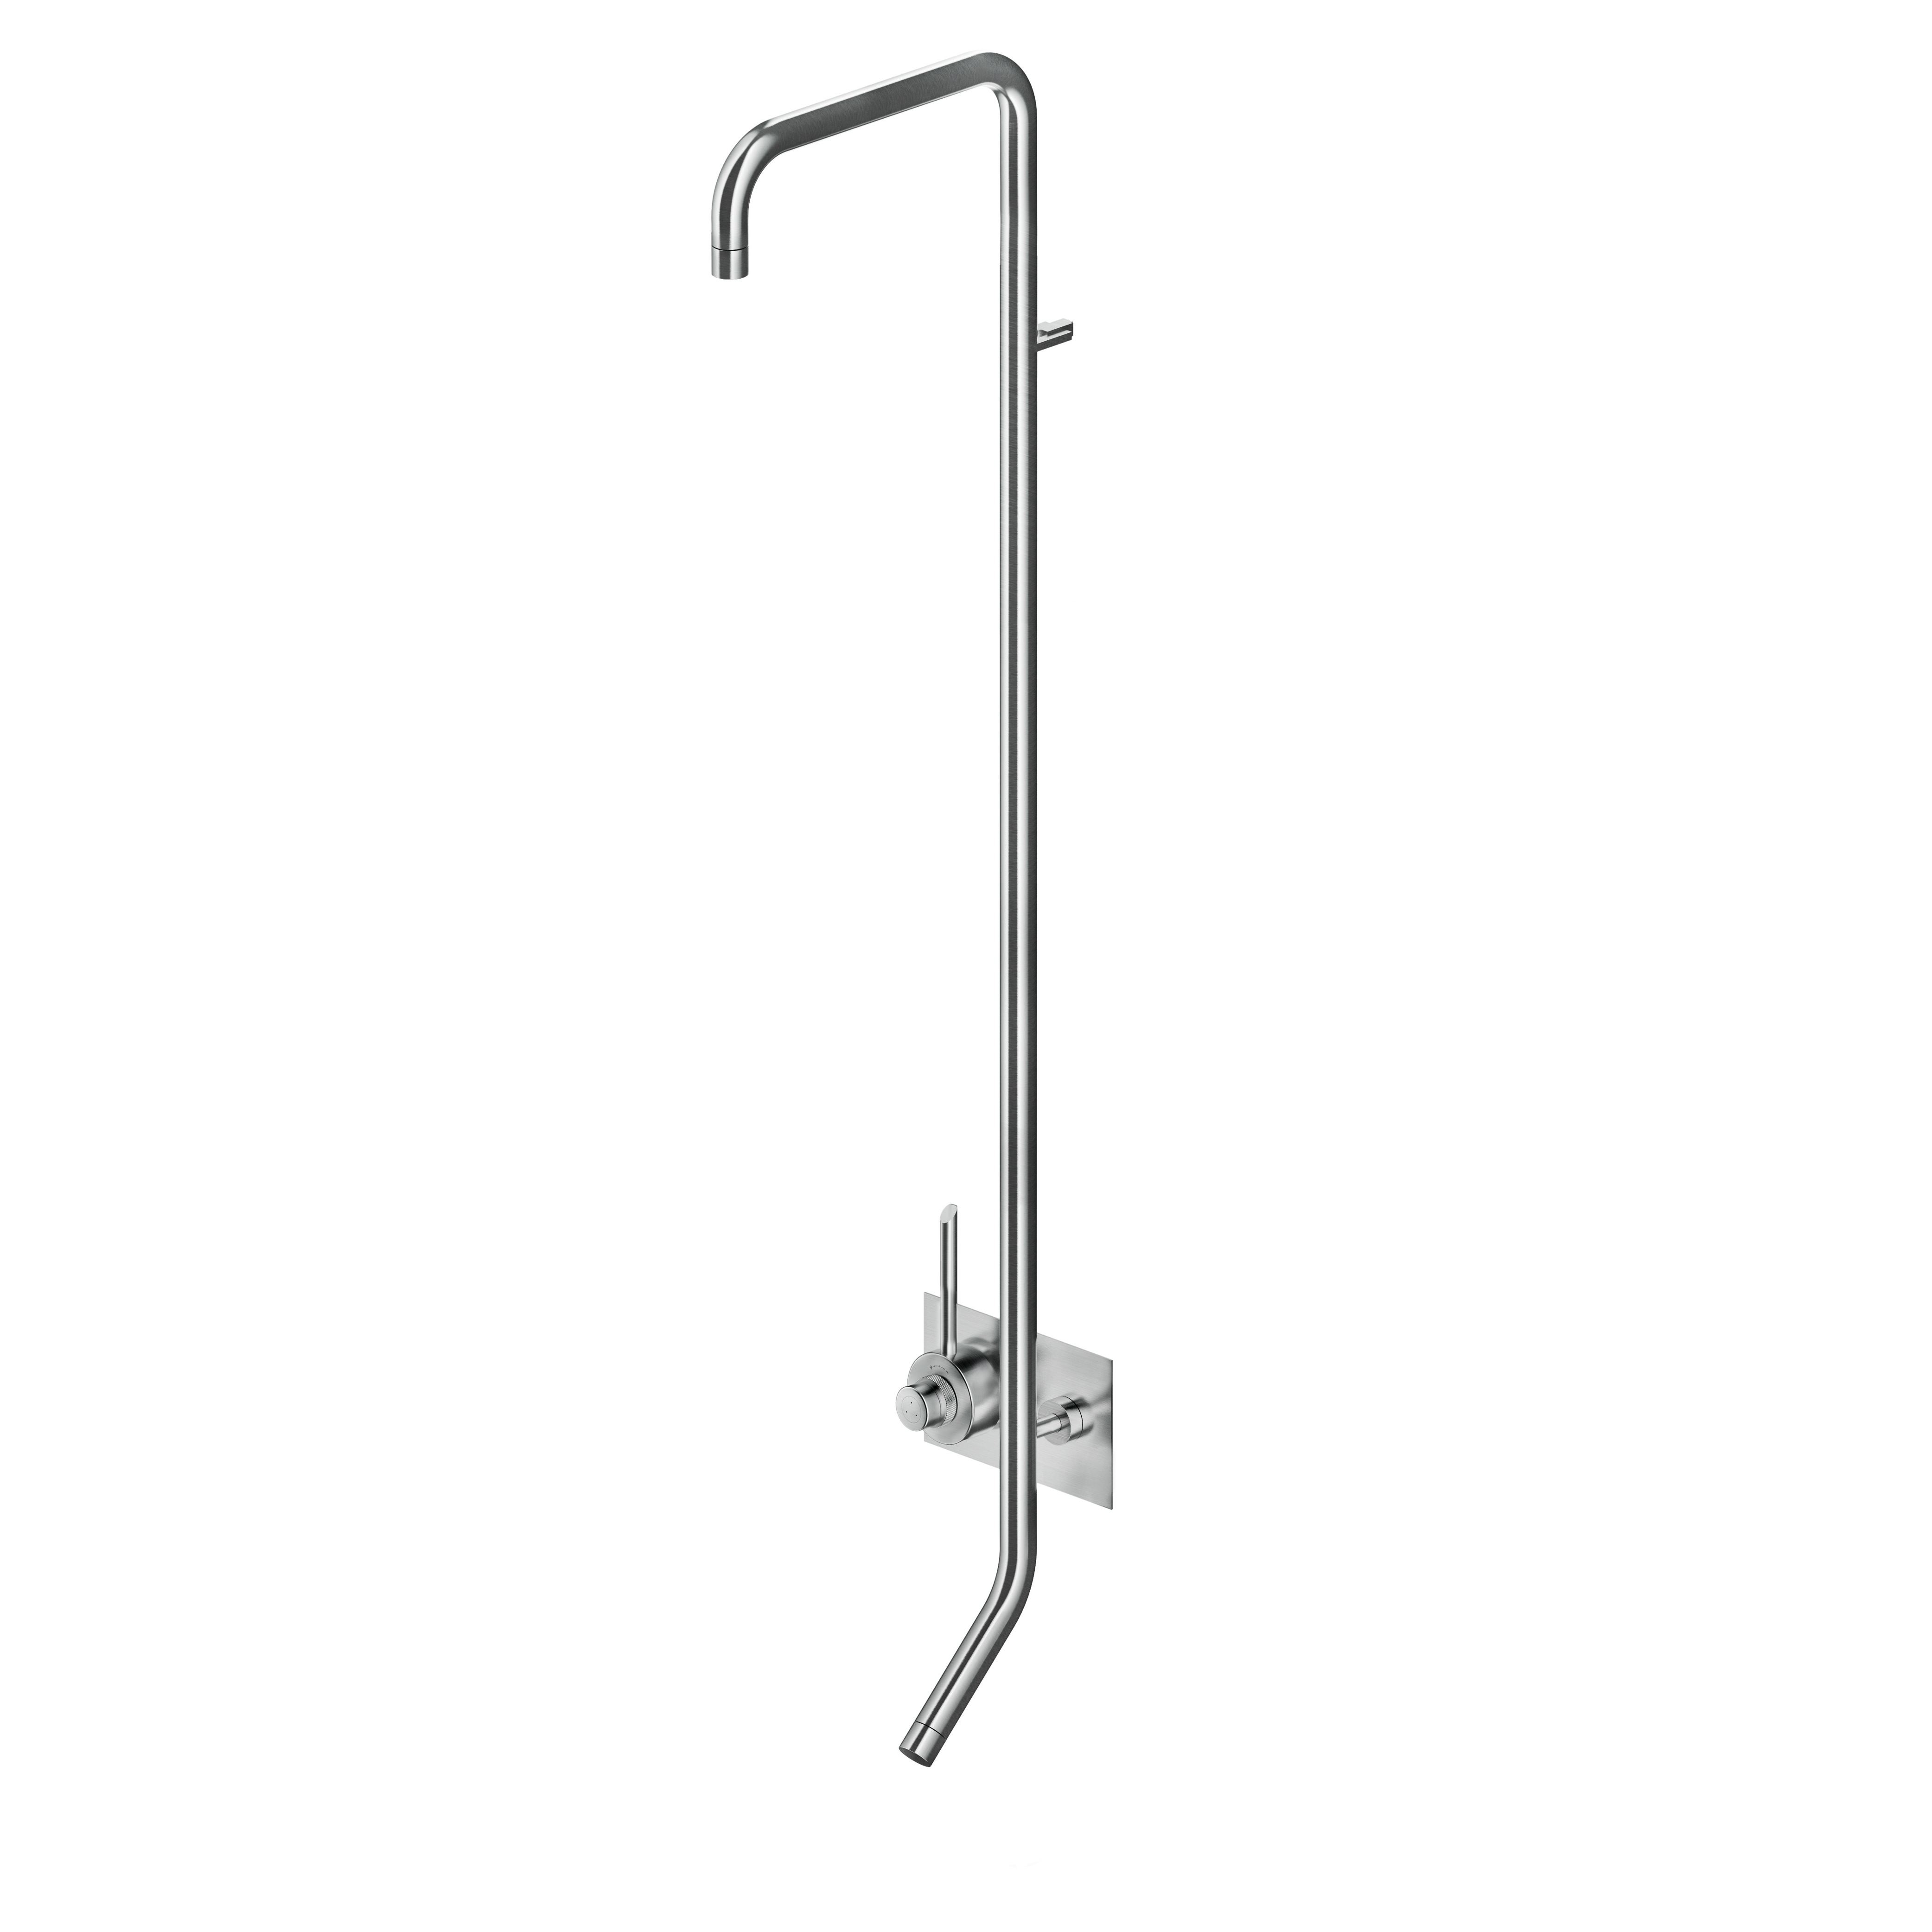 MGS CB437 Thermostatic Shower and Bath without Shower Head - matte stainless